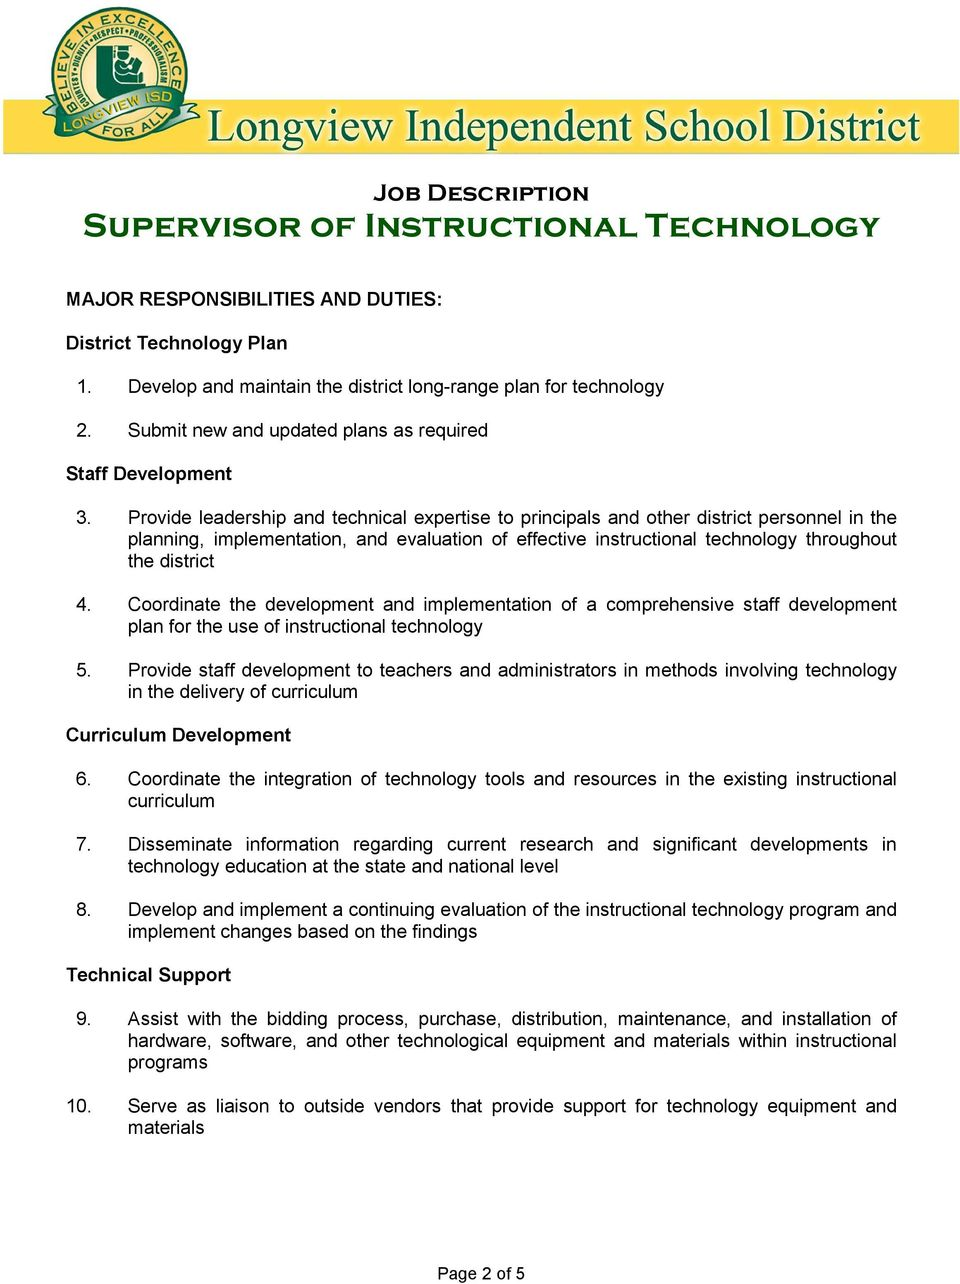 Coordinate the development and implementation of a comprehensive staff development plan for the use of instructional technology 5.